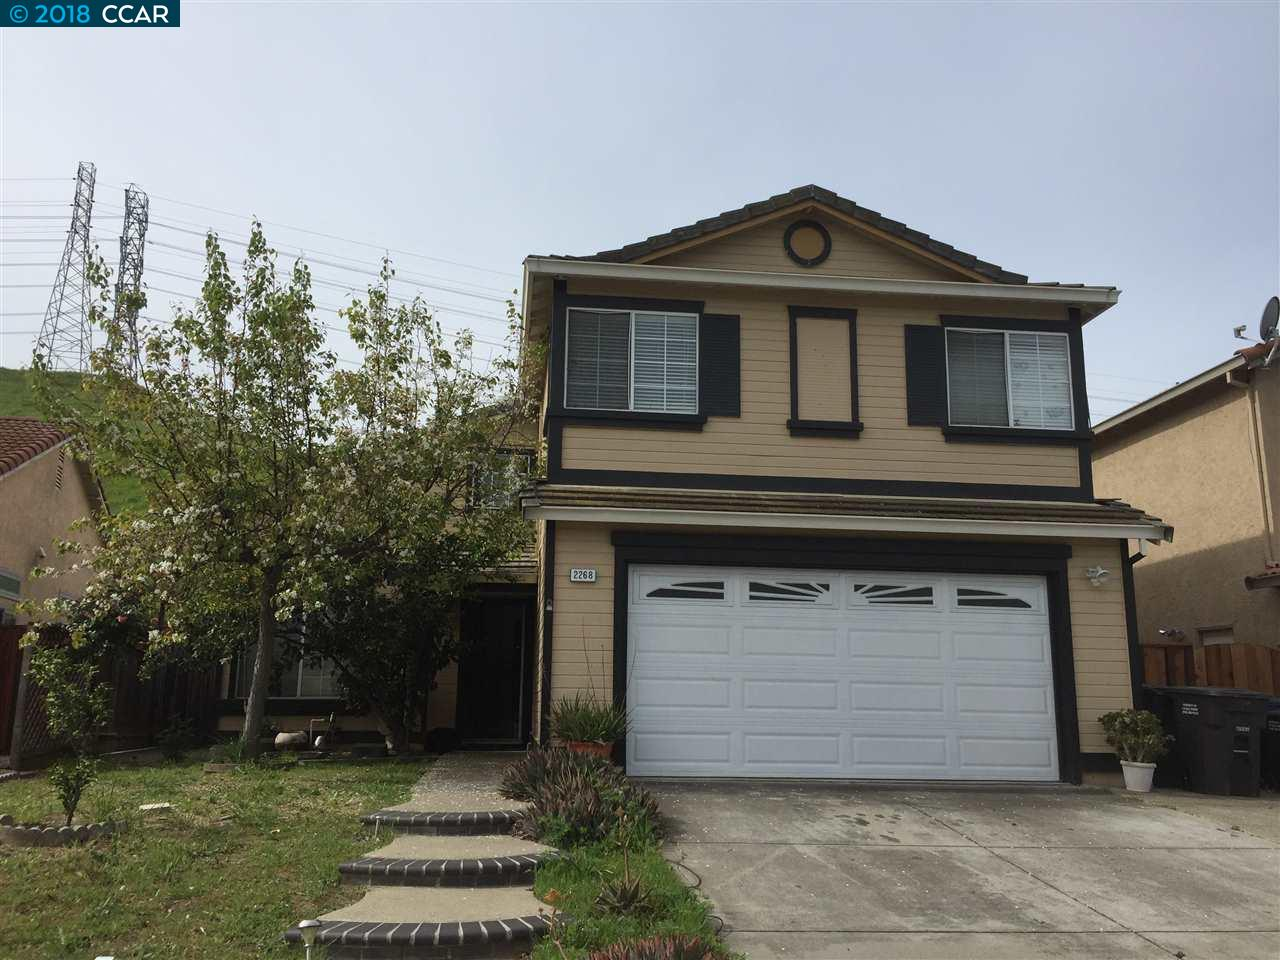 2268 OAK HILLS DR, PITTSBURG, CA 94565